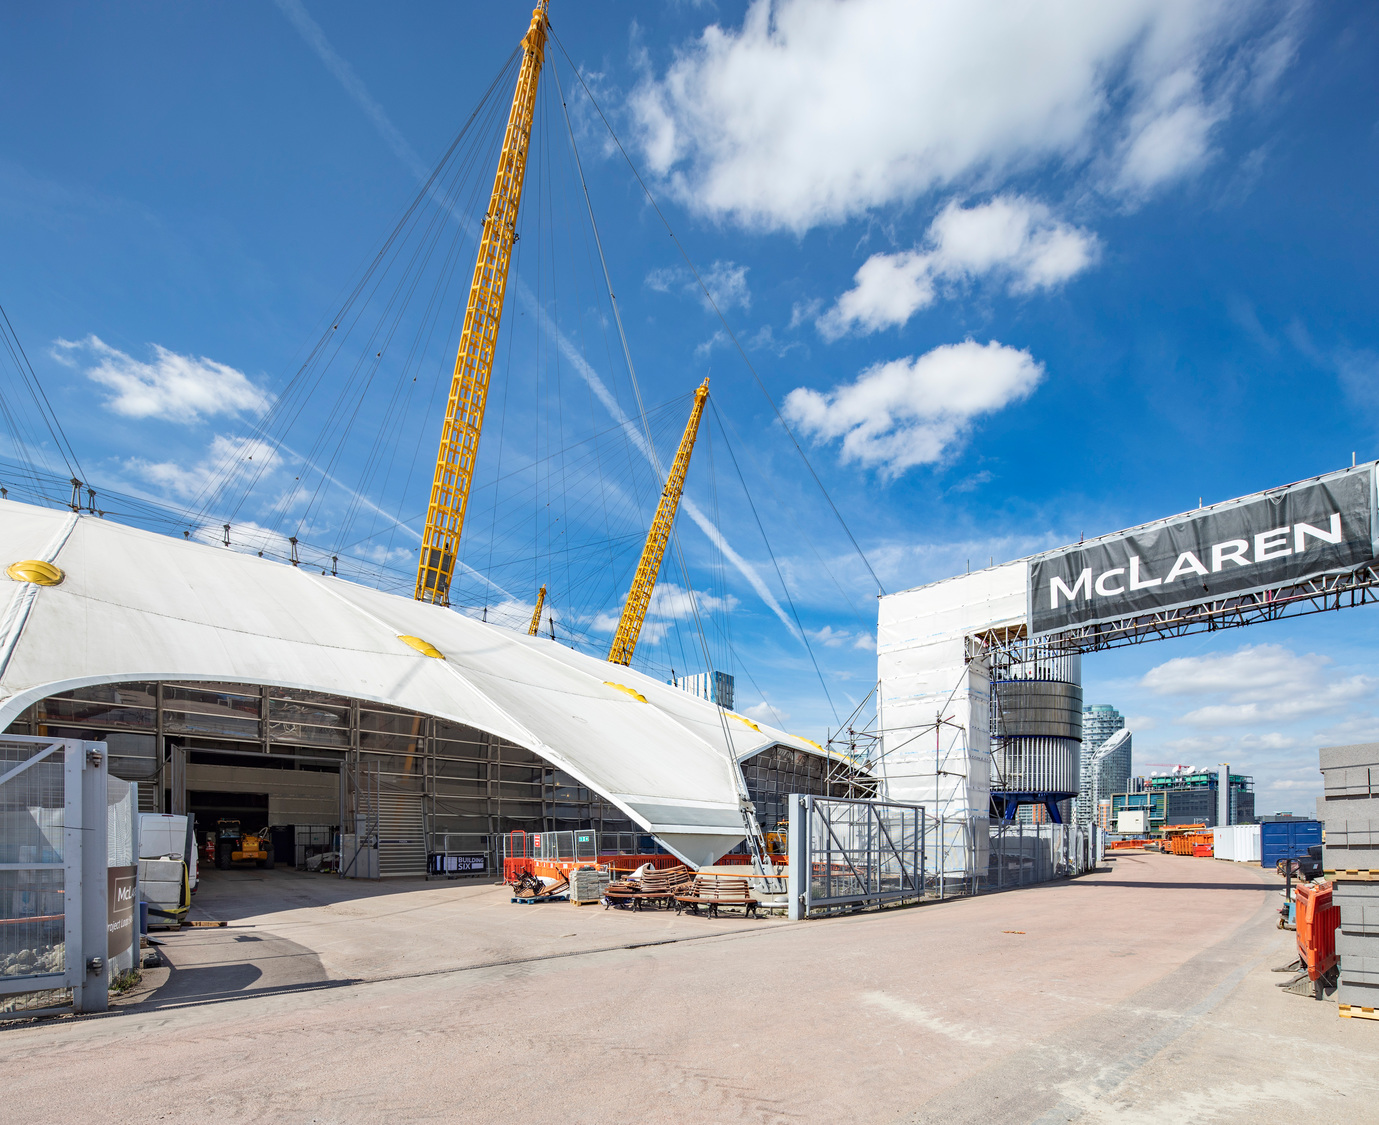 Project Loop at The O2 Mclaren Construction